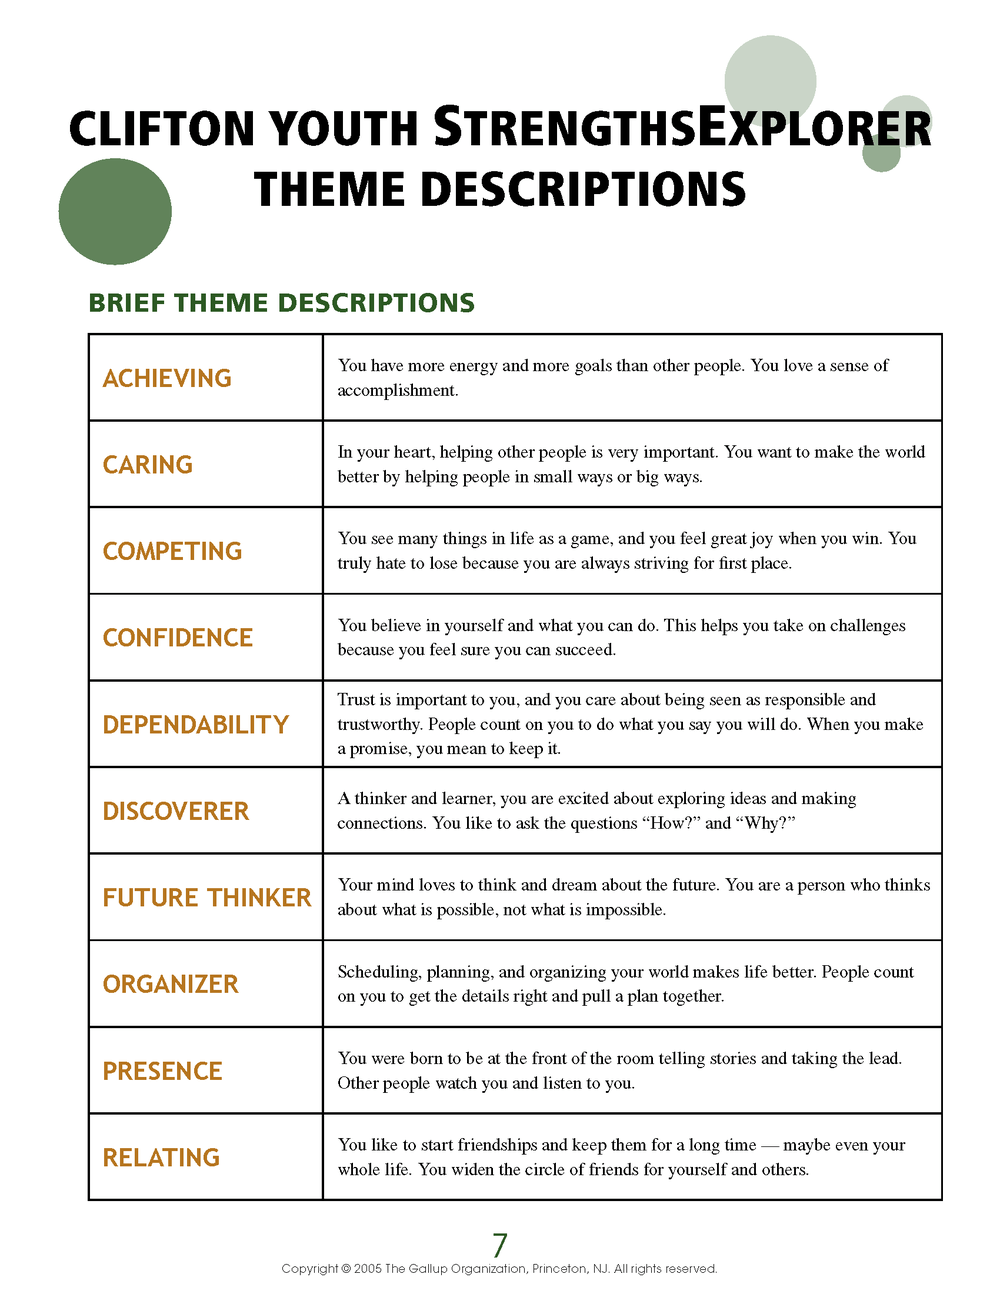 Clifton Youth StrengthsExplorer Theme Descriptions.png